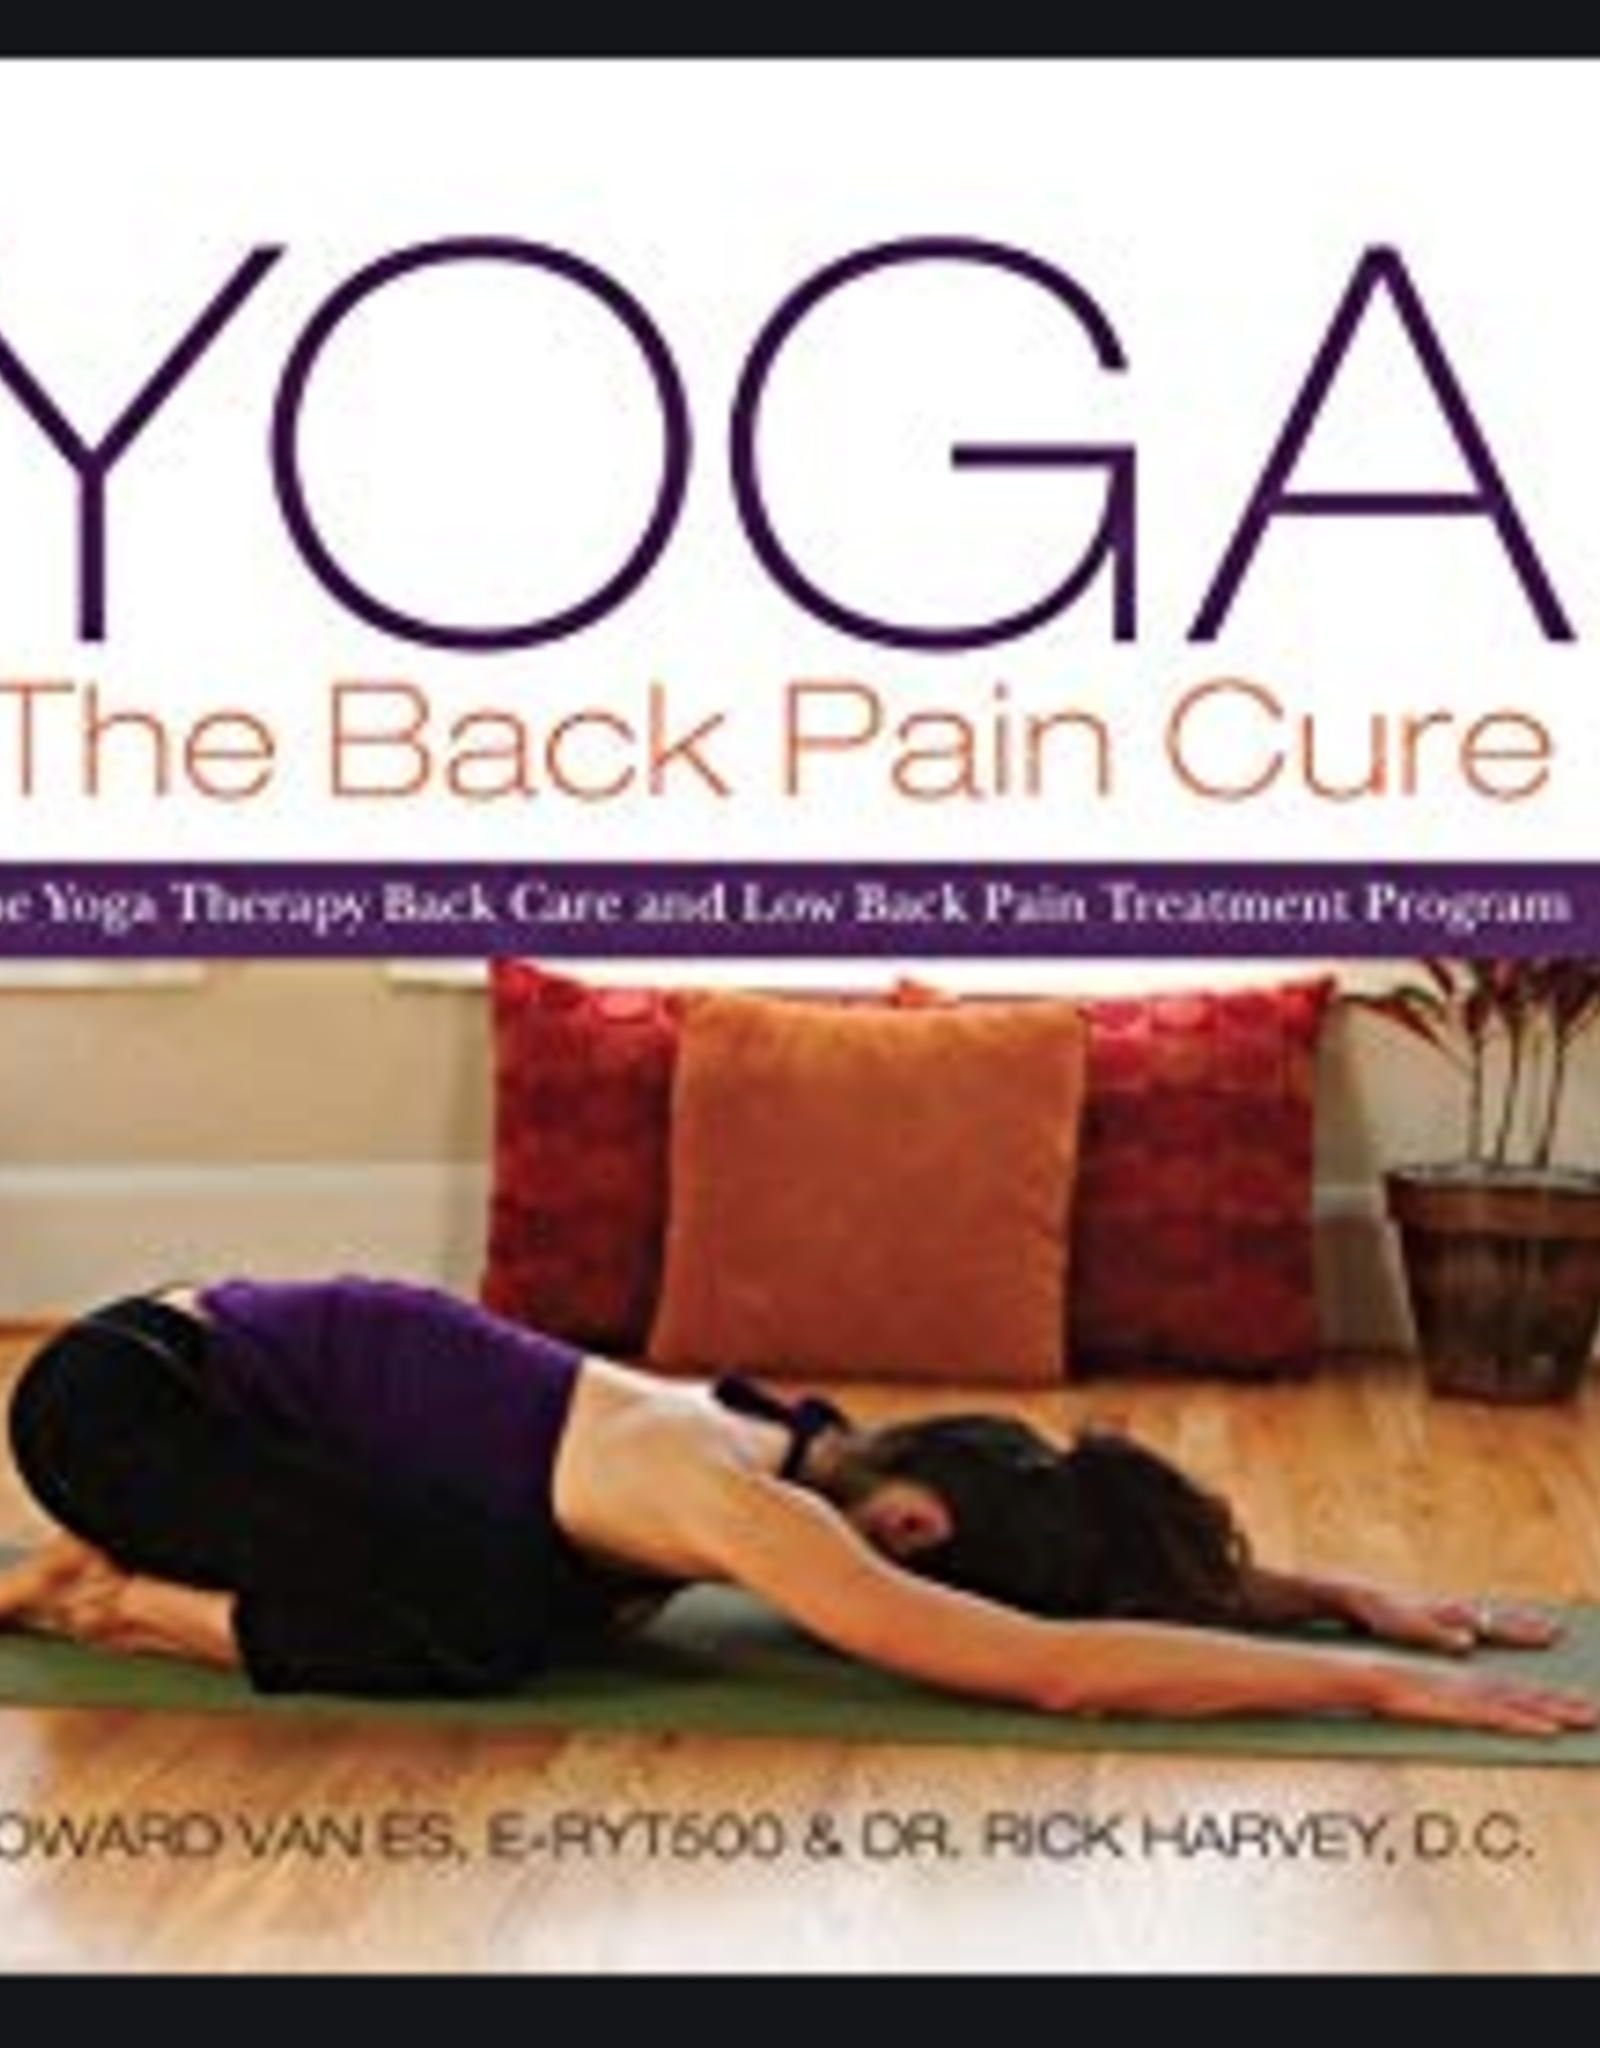 New Leaf Yoga: The Back Pain Cure